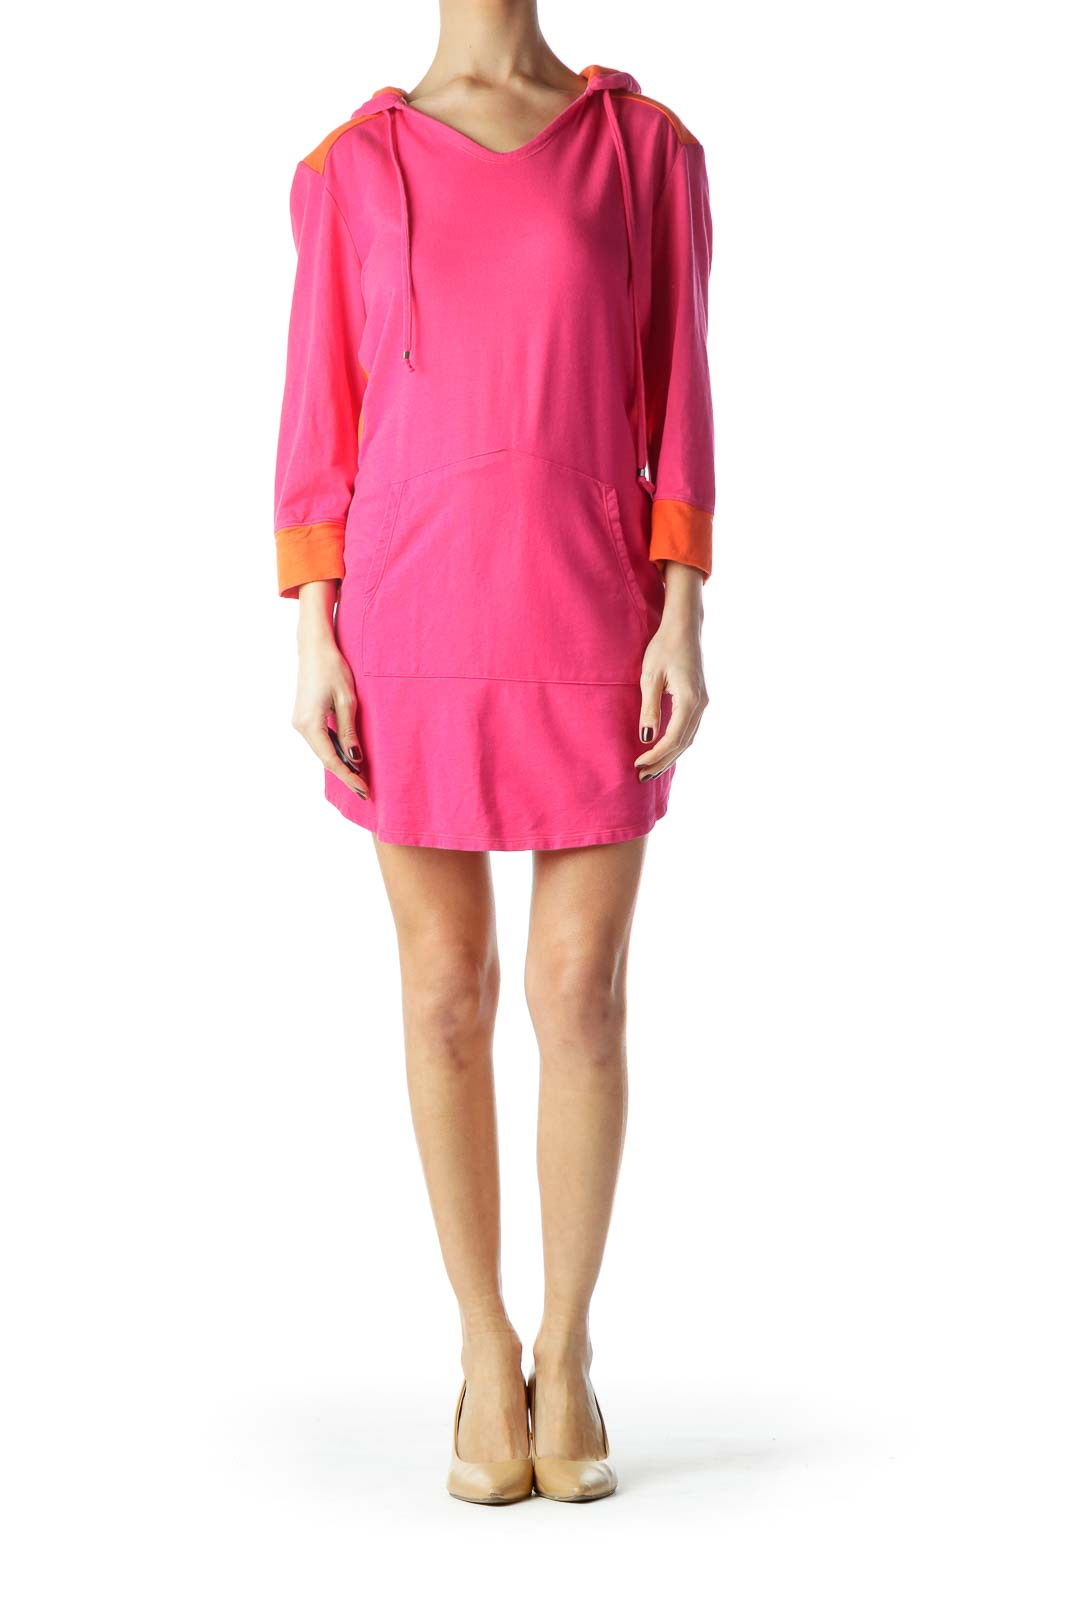 Hot Pink Orange Color Block Pullover Hooded Dress